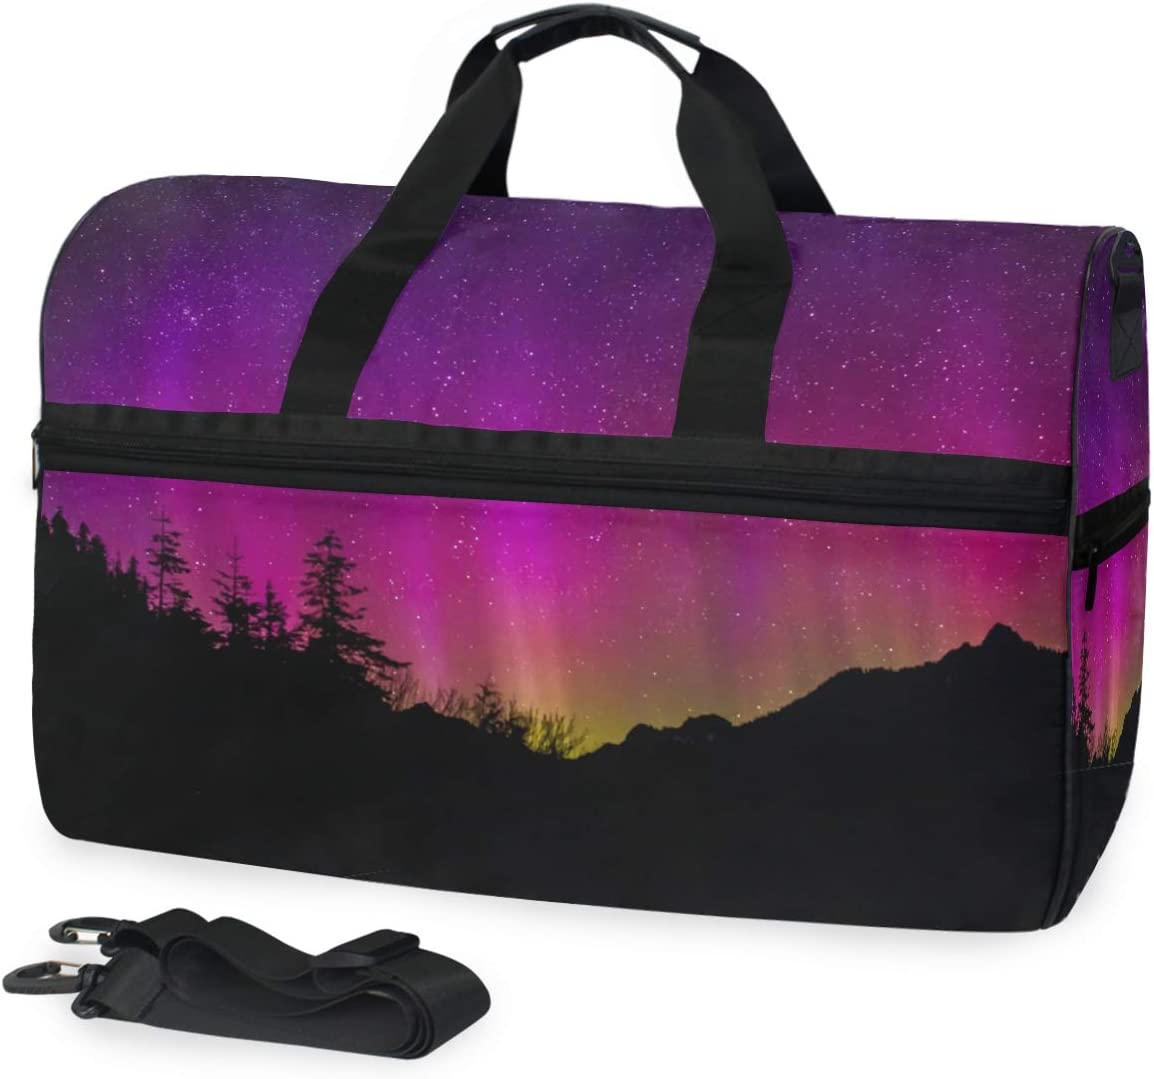 MUOOUM Fantastic Purple Aurora Large Duffle Bags Sports Gym Bag with Shoes Compartment for Men and Women